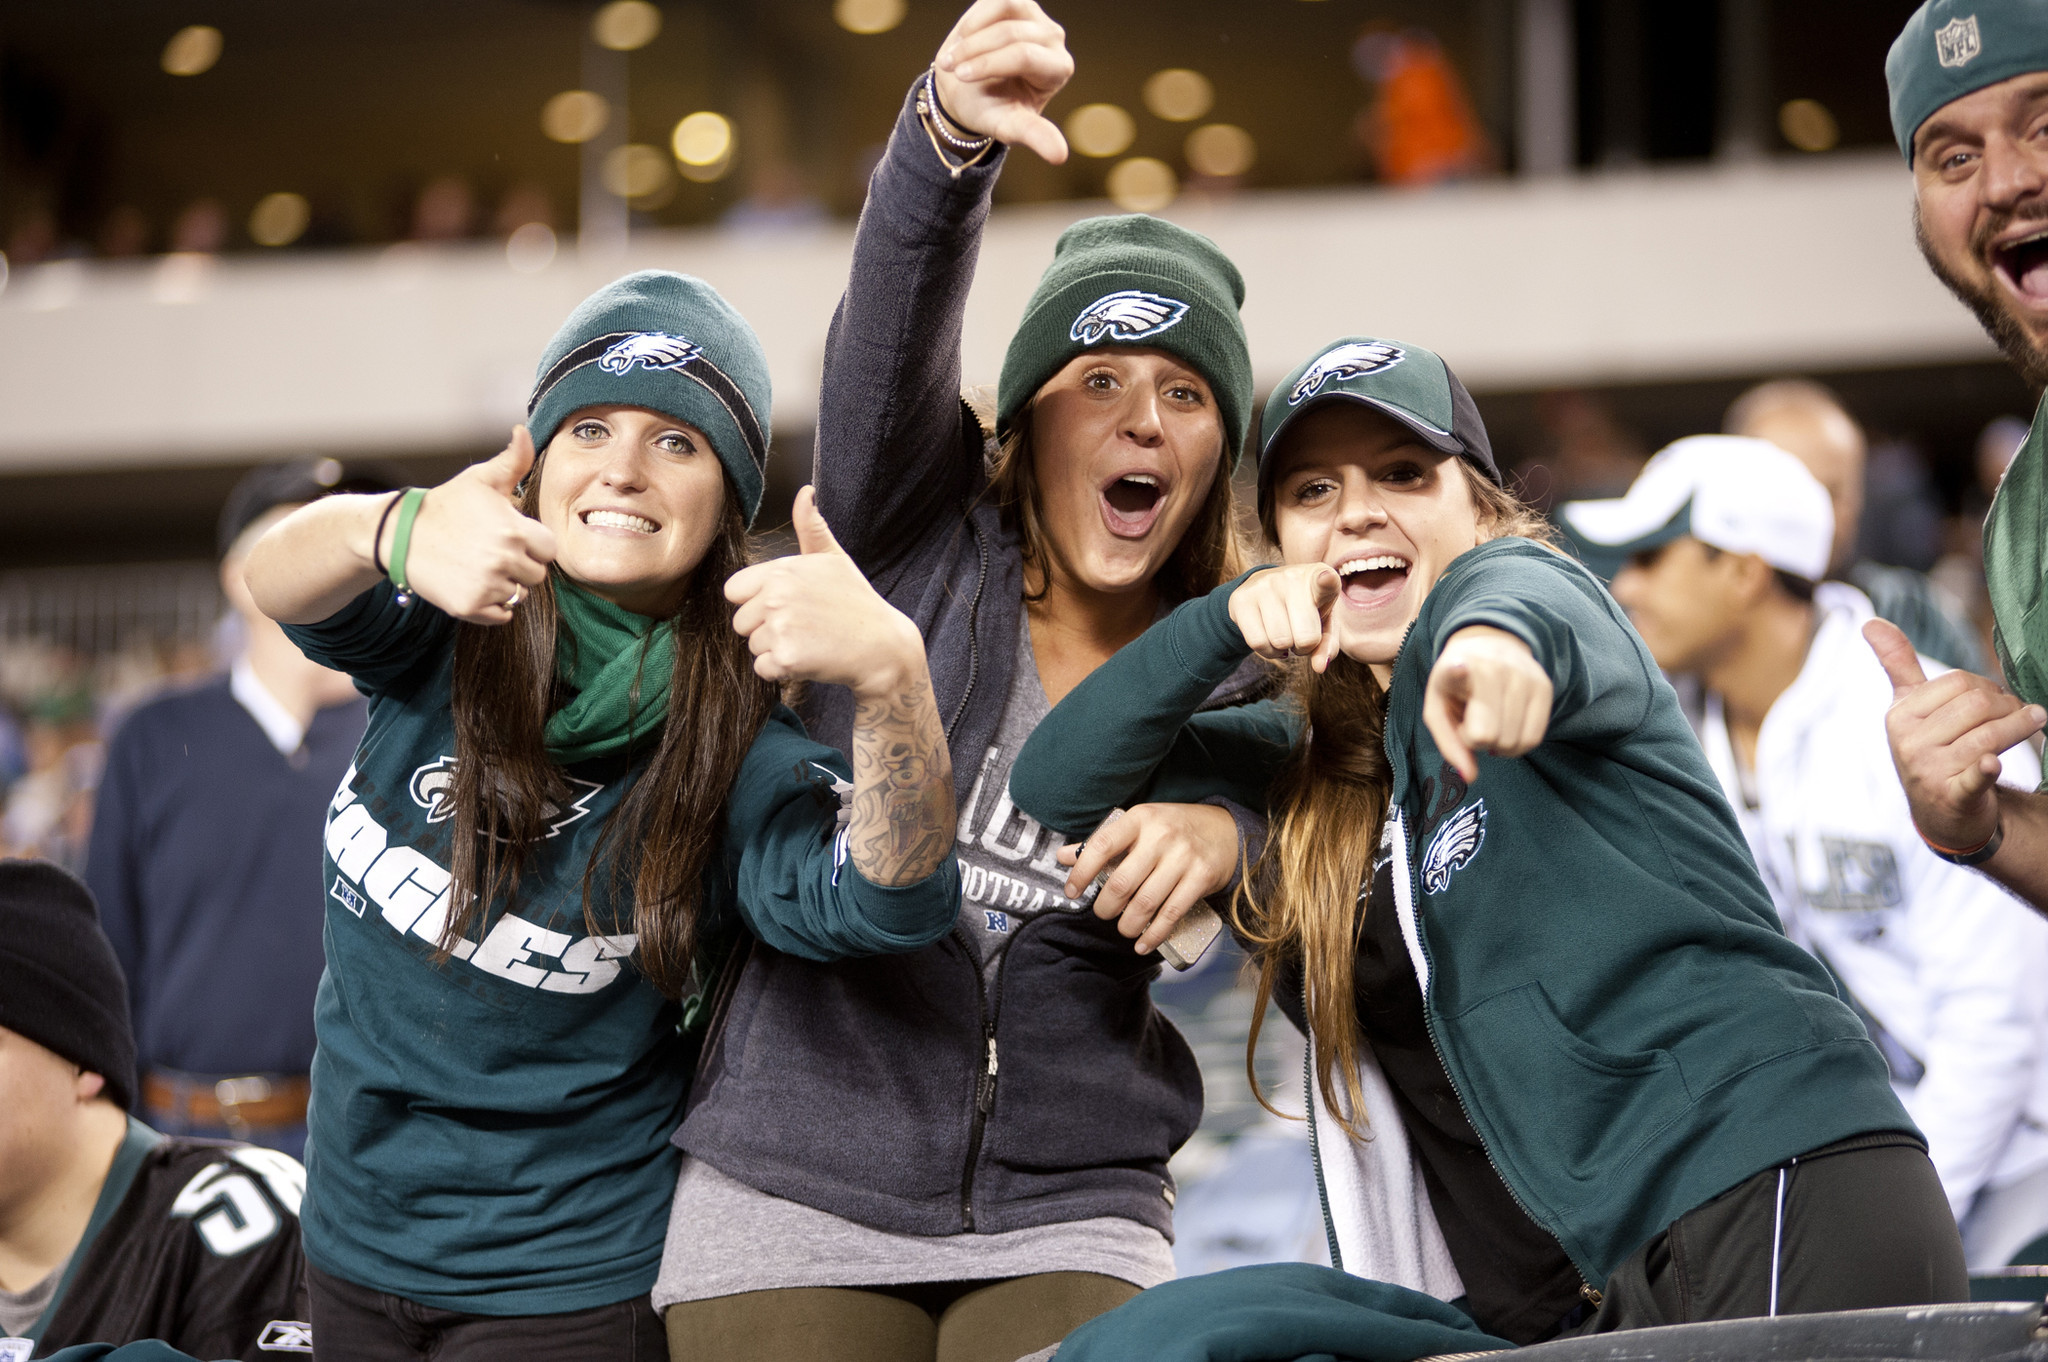 Philly Eagles Fans Eagles Fans The Morning Call